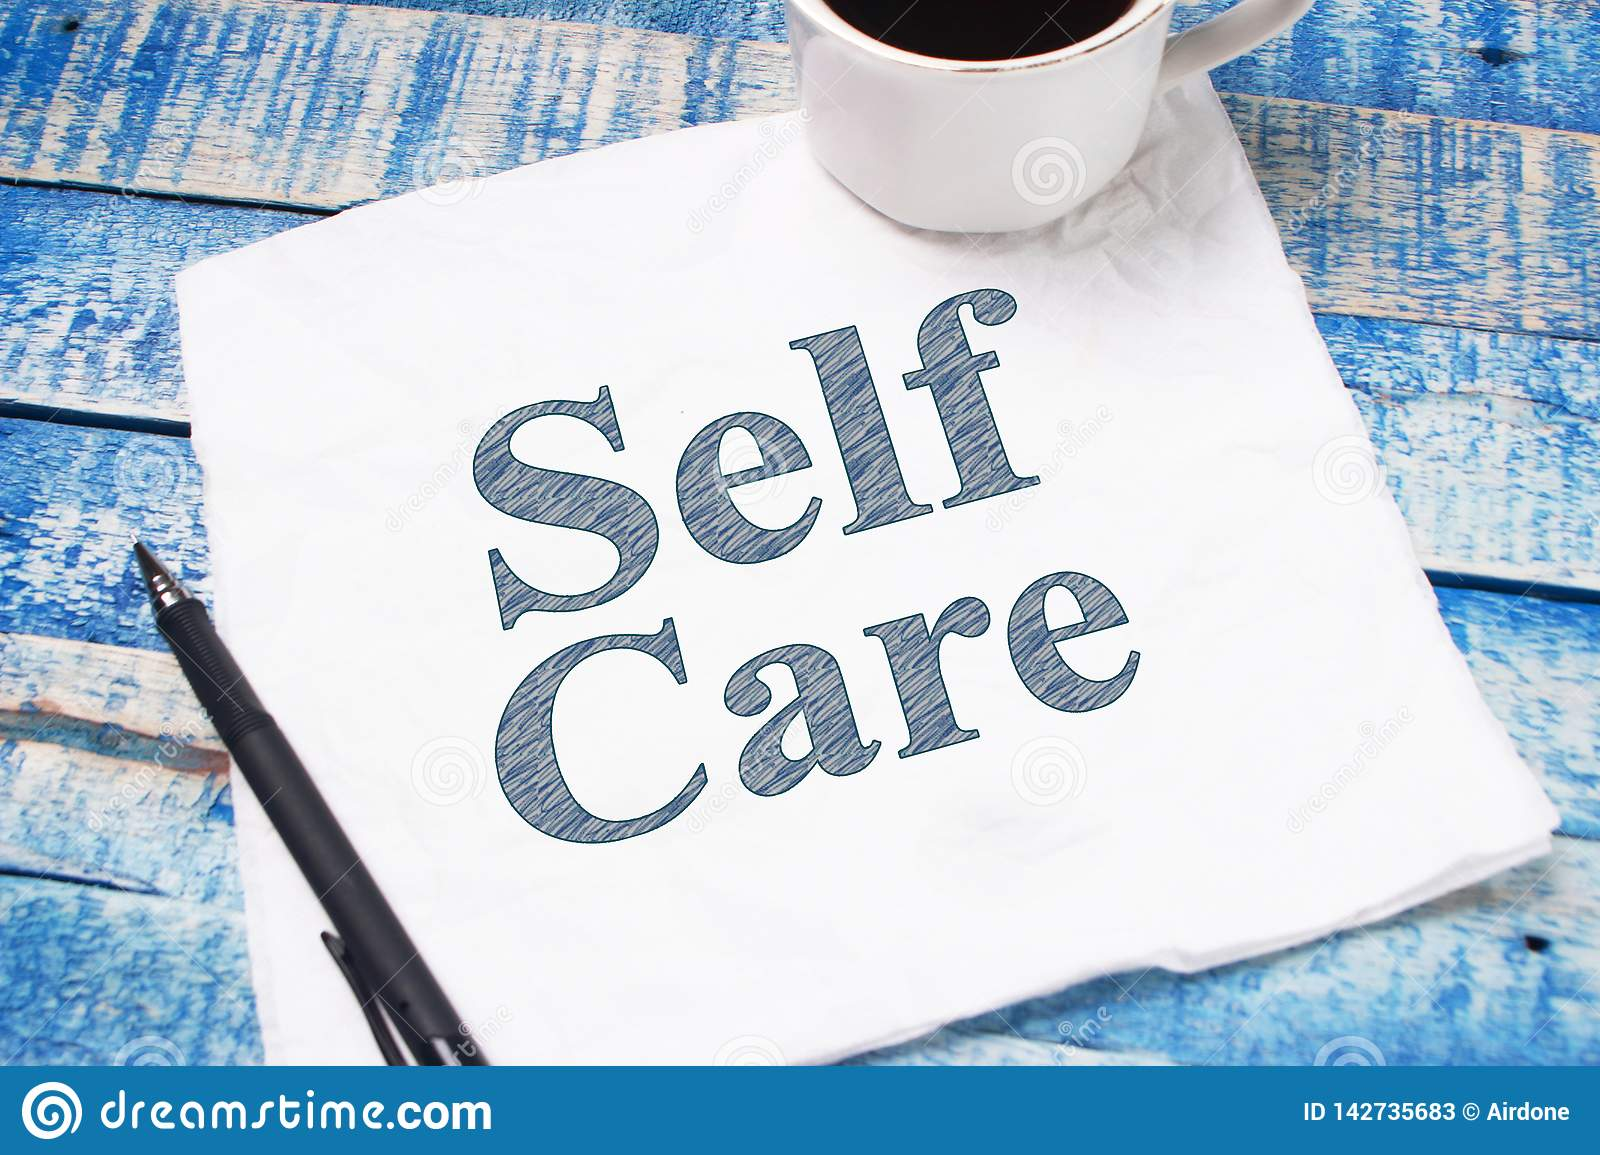 Self Care Motivational Words Quotes Concept Stock Image Image Of